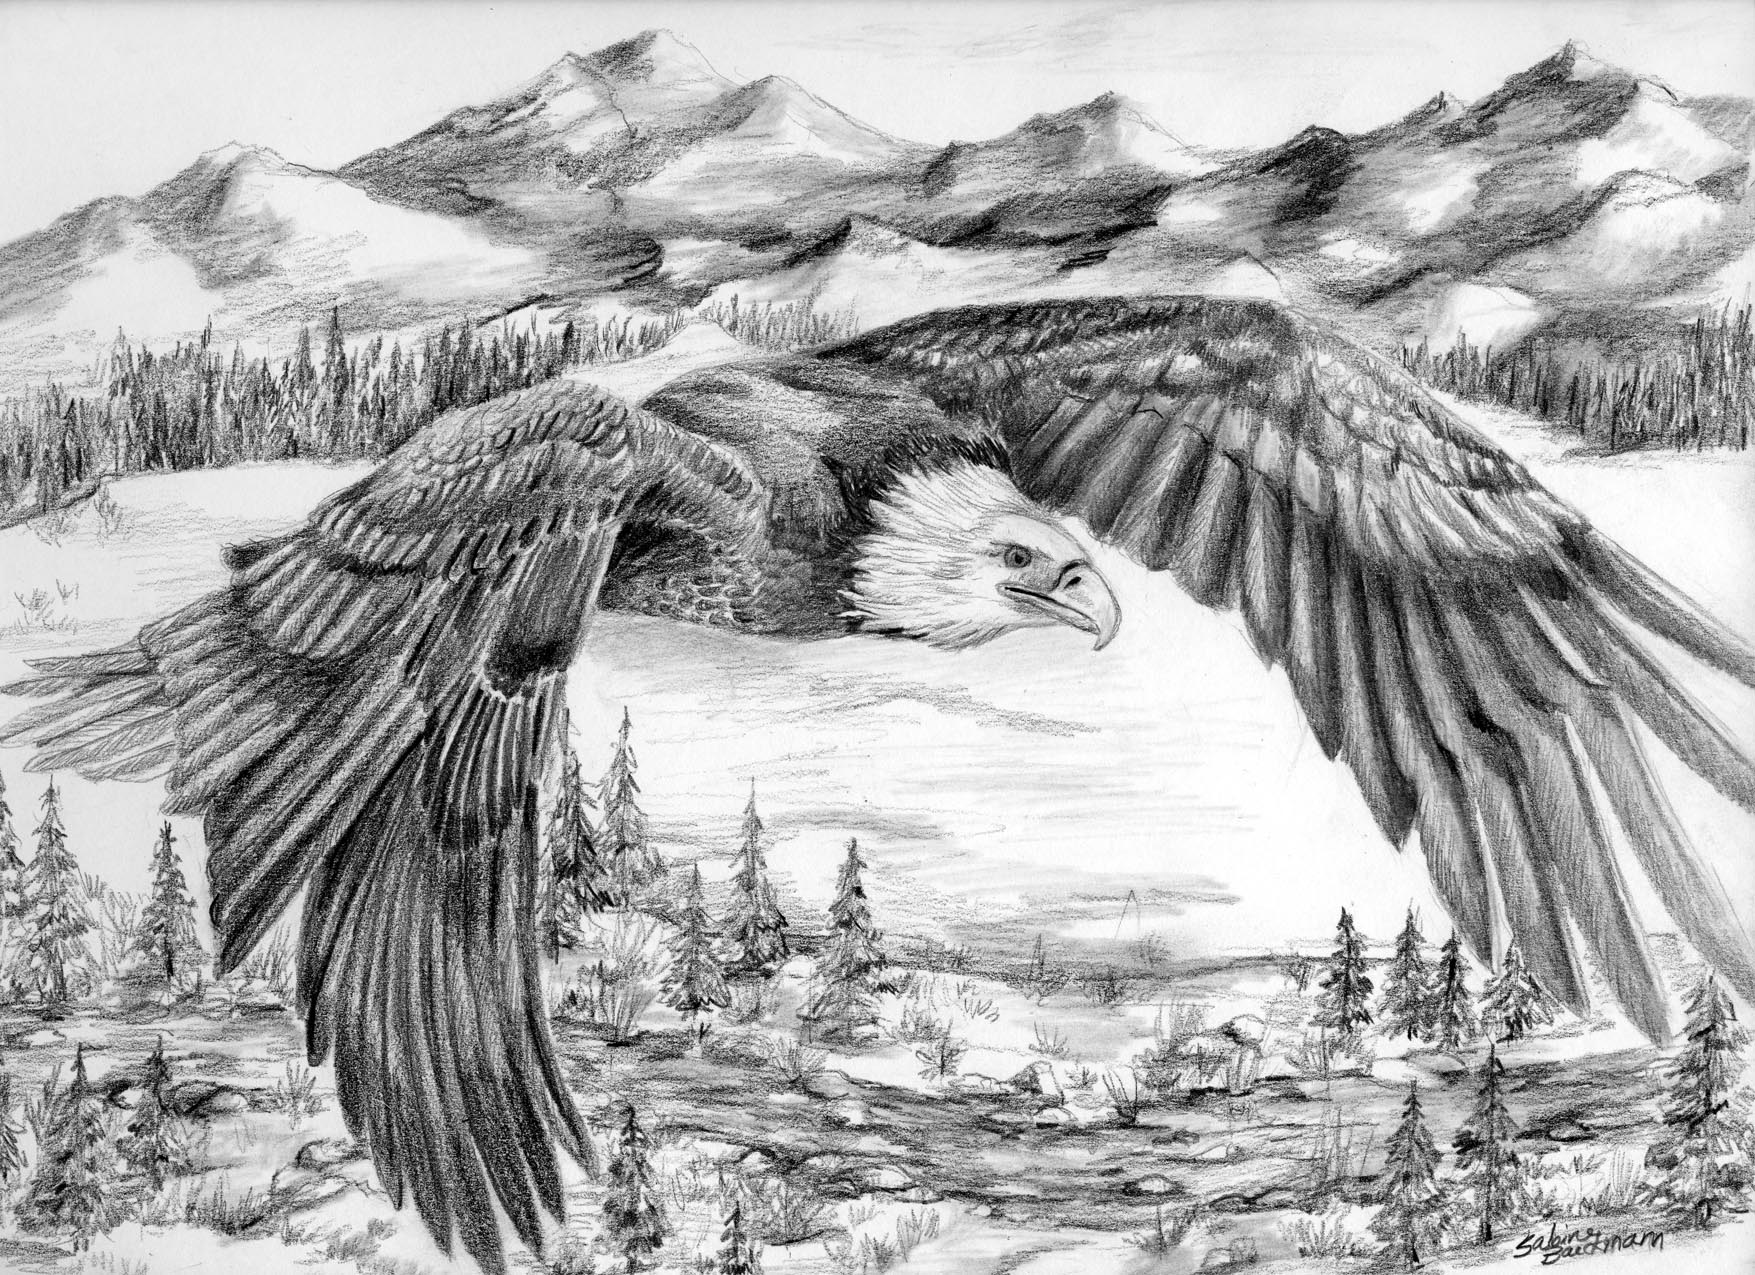 Mountain Glider, Original pencil